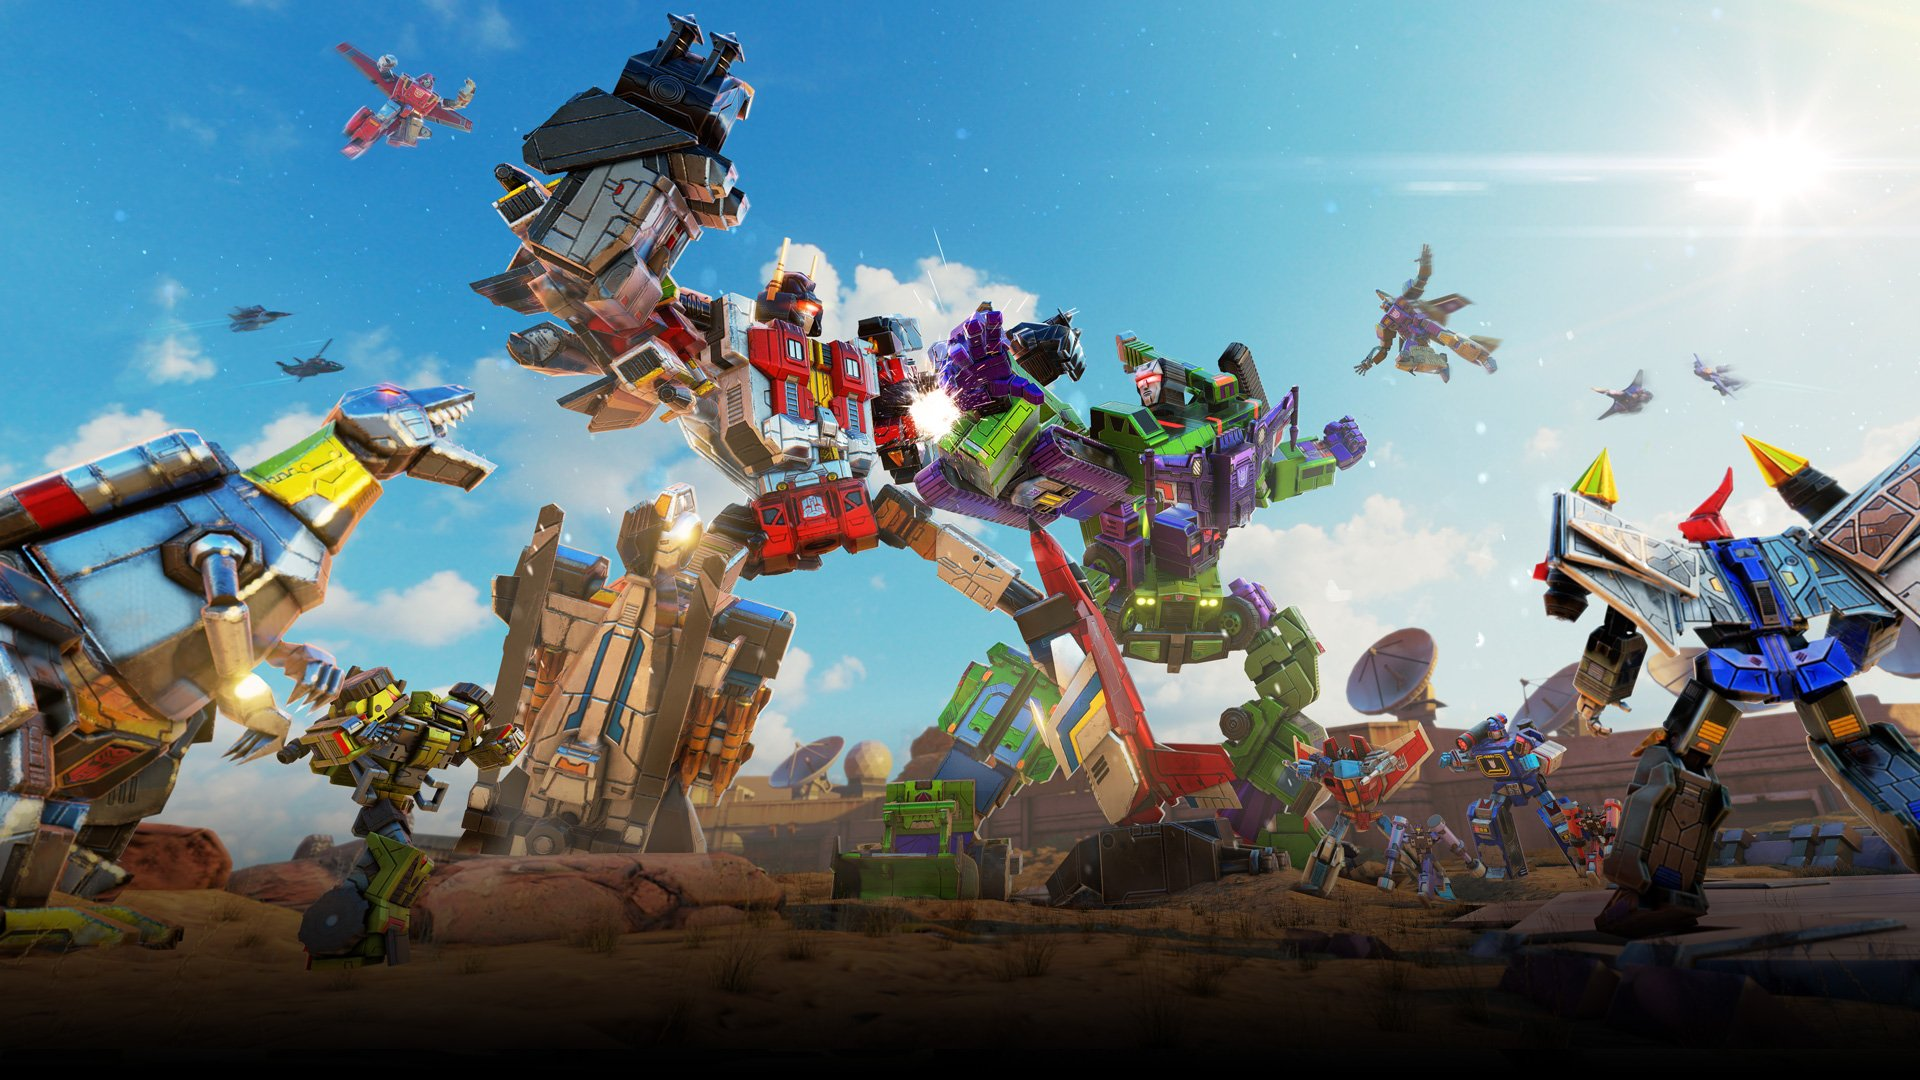 Transformers Earth Wars Combine Wars with Devastator and Superion 1920x1080